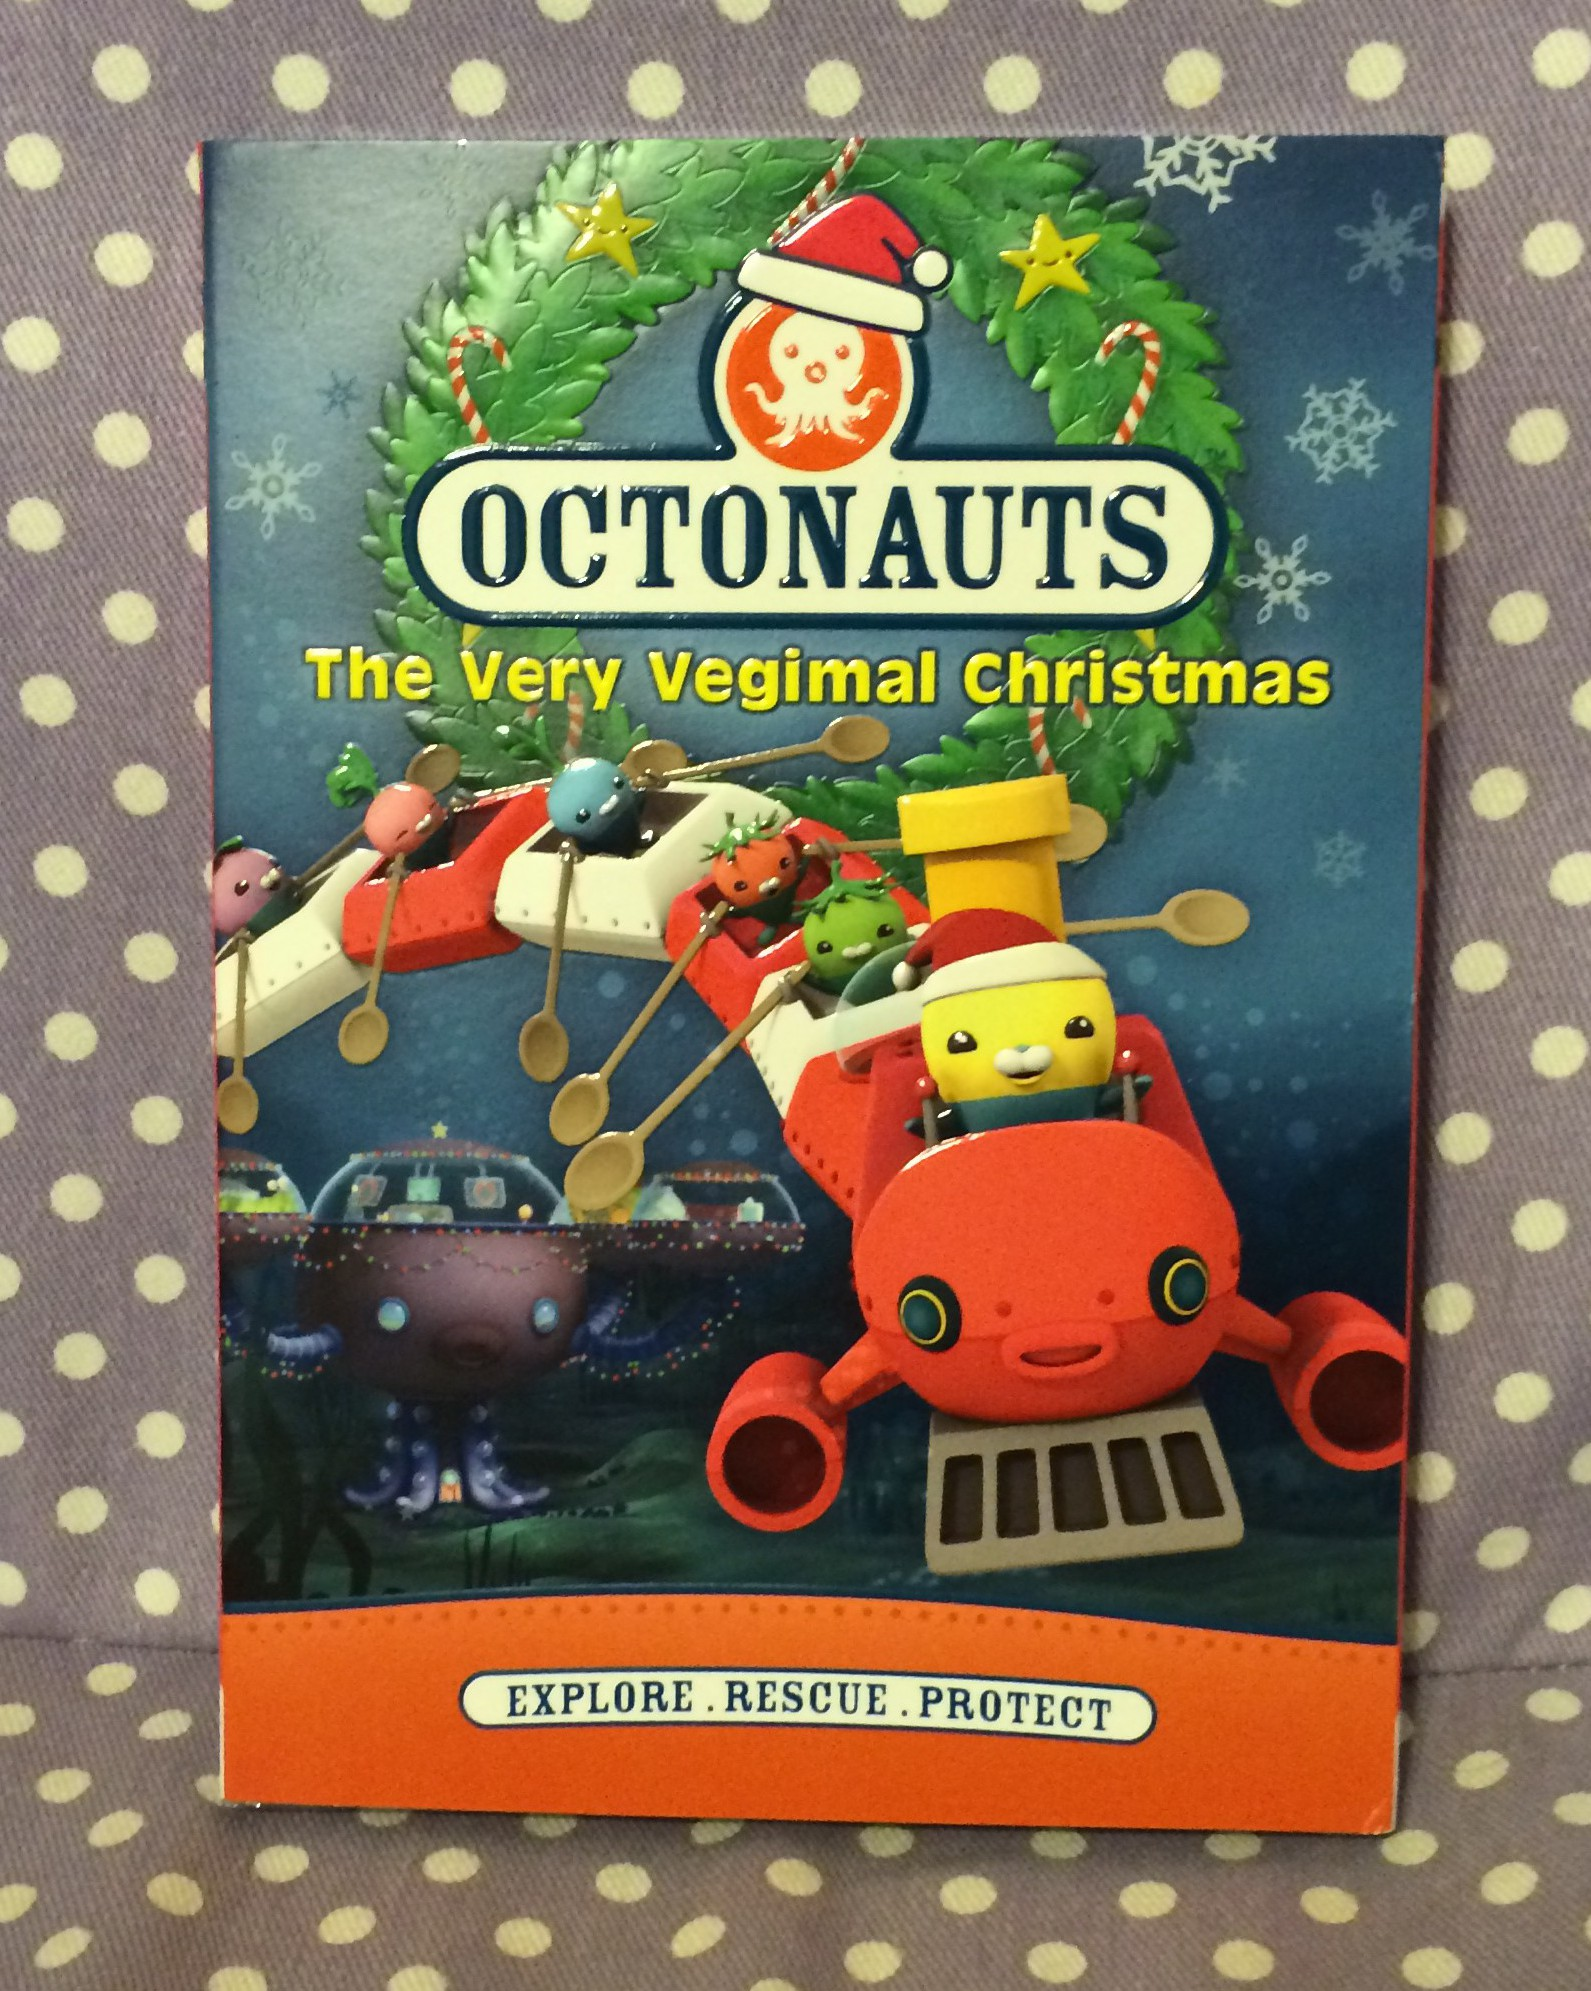 Octonauts: The Very Vegimal Christmas - The Neighborhood Moms